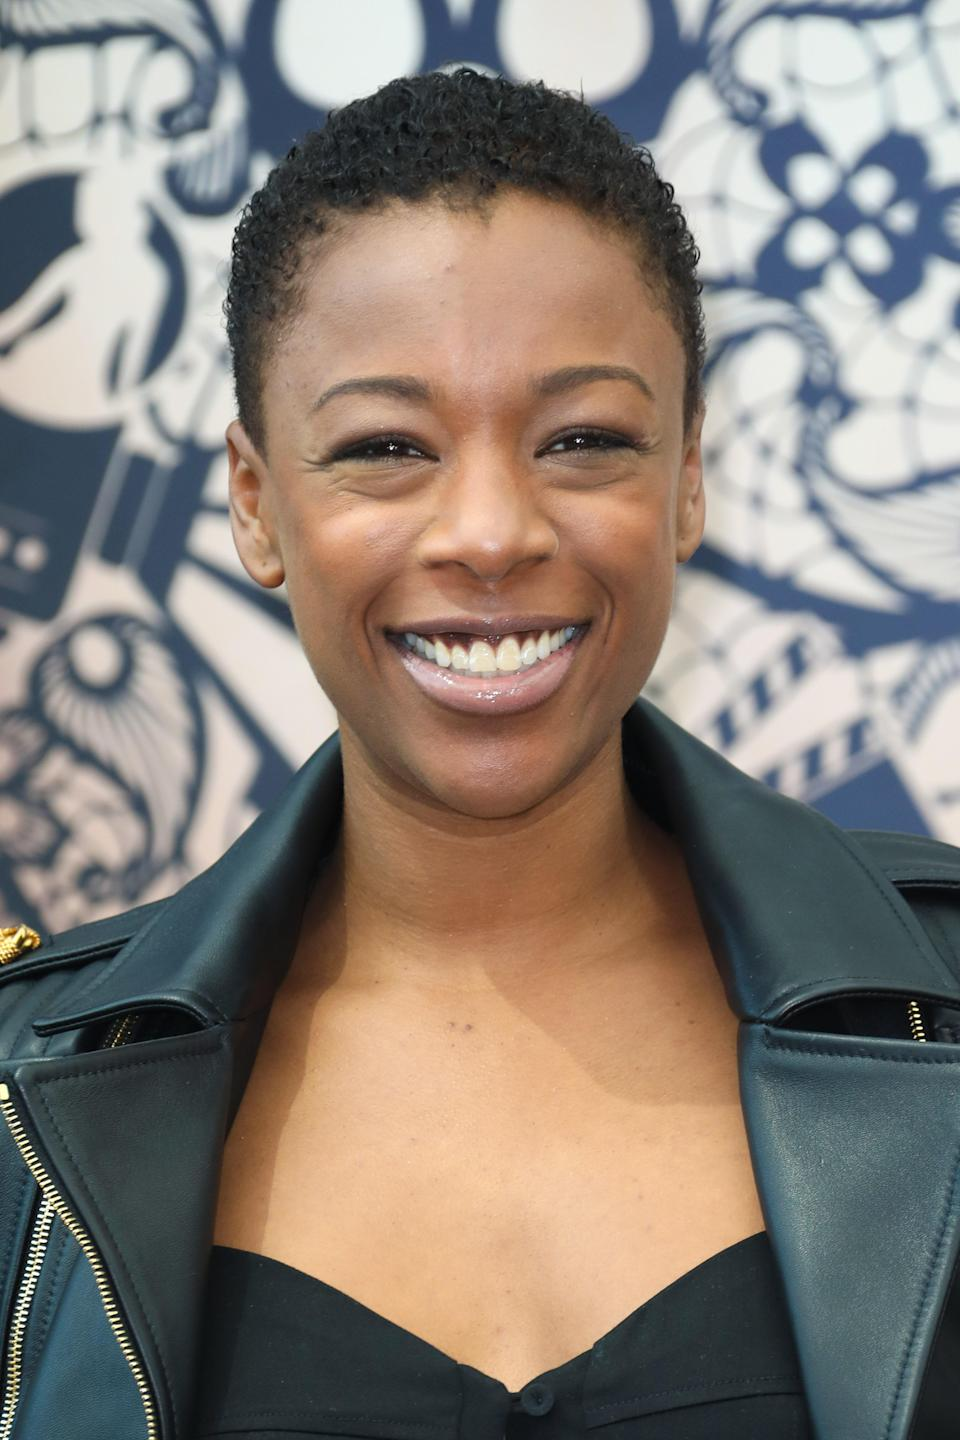 """While the Big Chop is hardly a """"trend,"""" 2020 has been a particularly big year for women transitioning from relaxed to natural hair. """"The big chop is definitely a cut that isn't going away anytime soon,"""" says Jamila Powell, owner of Miami's <a href=""""https://www.maggierosesalon.com/english"""" rel=""""nofollow noopener"""" target=""""_blank"""" data-ylk=""""slk:Maggie Rose Salon"""" class=""""link rapid-noclick-resp"""">Maggie Rose Salon</a>. """"This short cropped look frames your face and is low maintenance."""" Start fresh with a cropped cut—or even a <a href=""""https://www.glamour.com/gallery/women-say-what-its-like-to-shave-your-head?mbid=synd_yahoo_rss"""" rel=""""nofollow noopener"""" target=""""_blank"""" data-ylk=""""slk:buzz cut"""" class=""""link rapid-noclick-resp"""">buzz cut</a>—so your curls grow in with all their natural glory."""